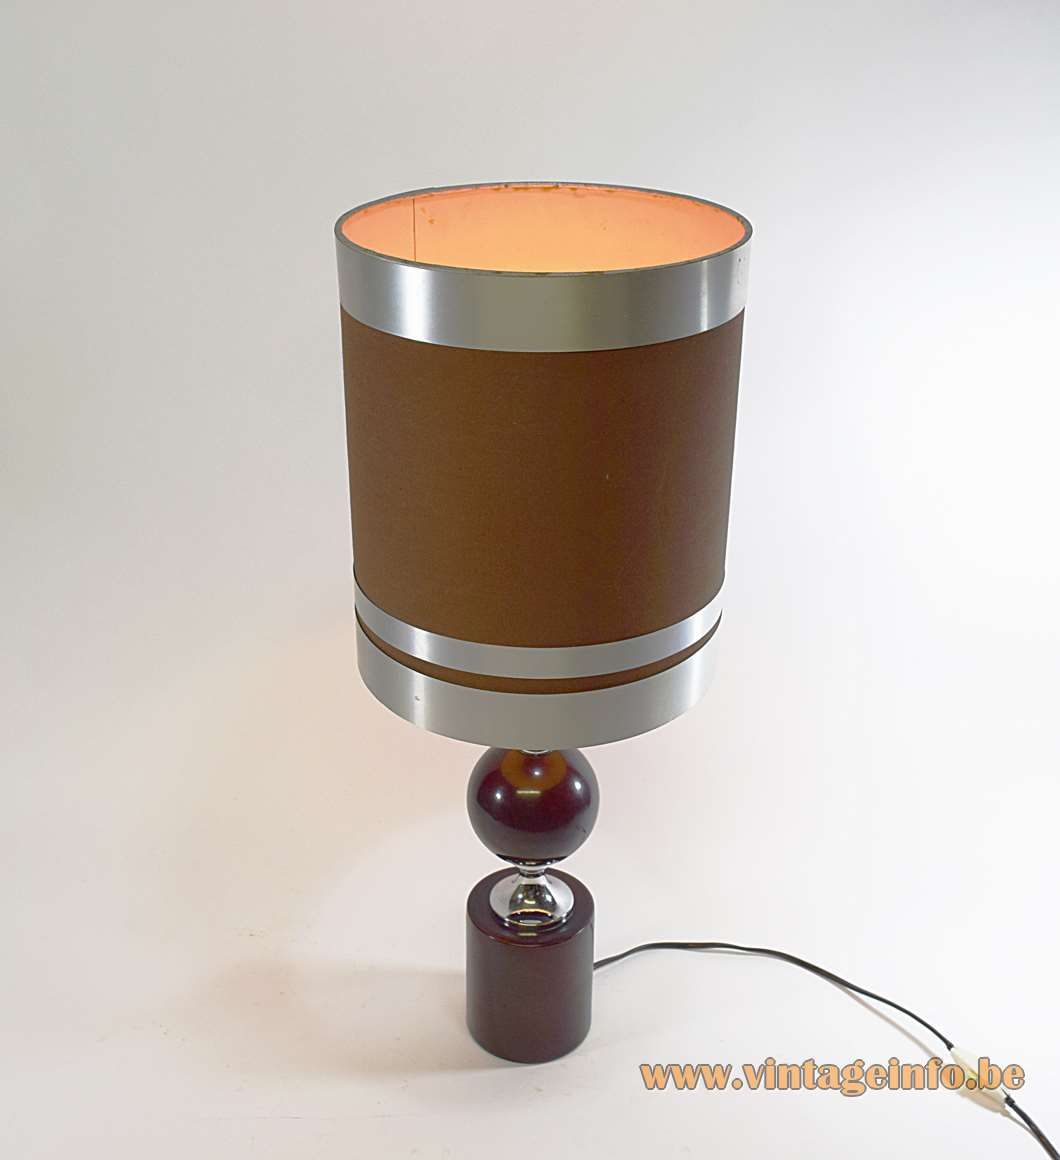 Philippe Barbier Aubergine Table Lamp eggplant round base globe metal chrome Maison Paris 1960s 1970s MCM